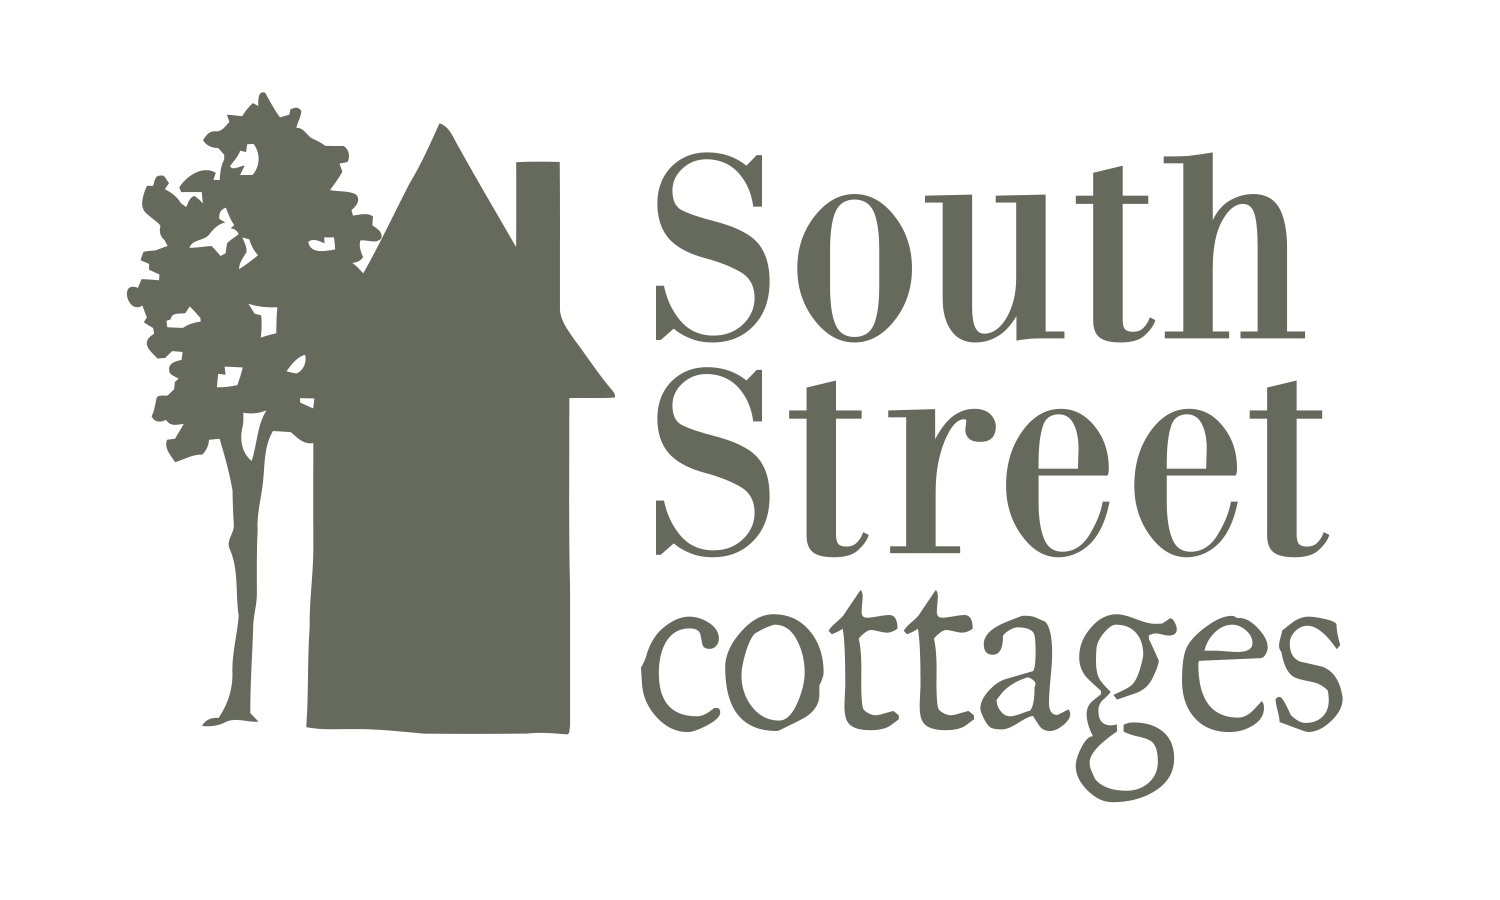 South Street Cottages